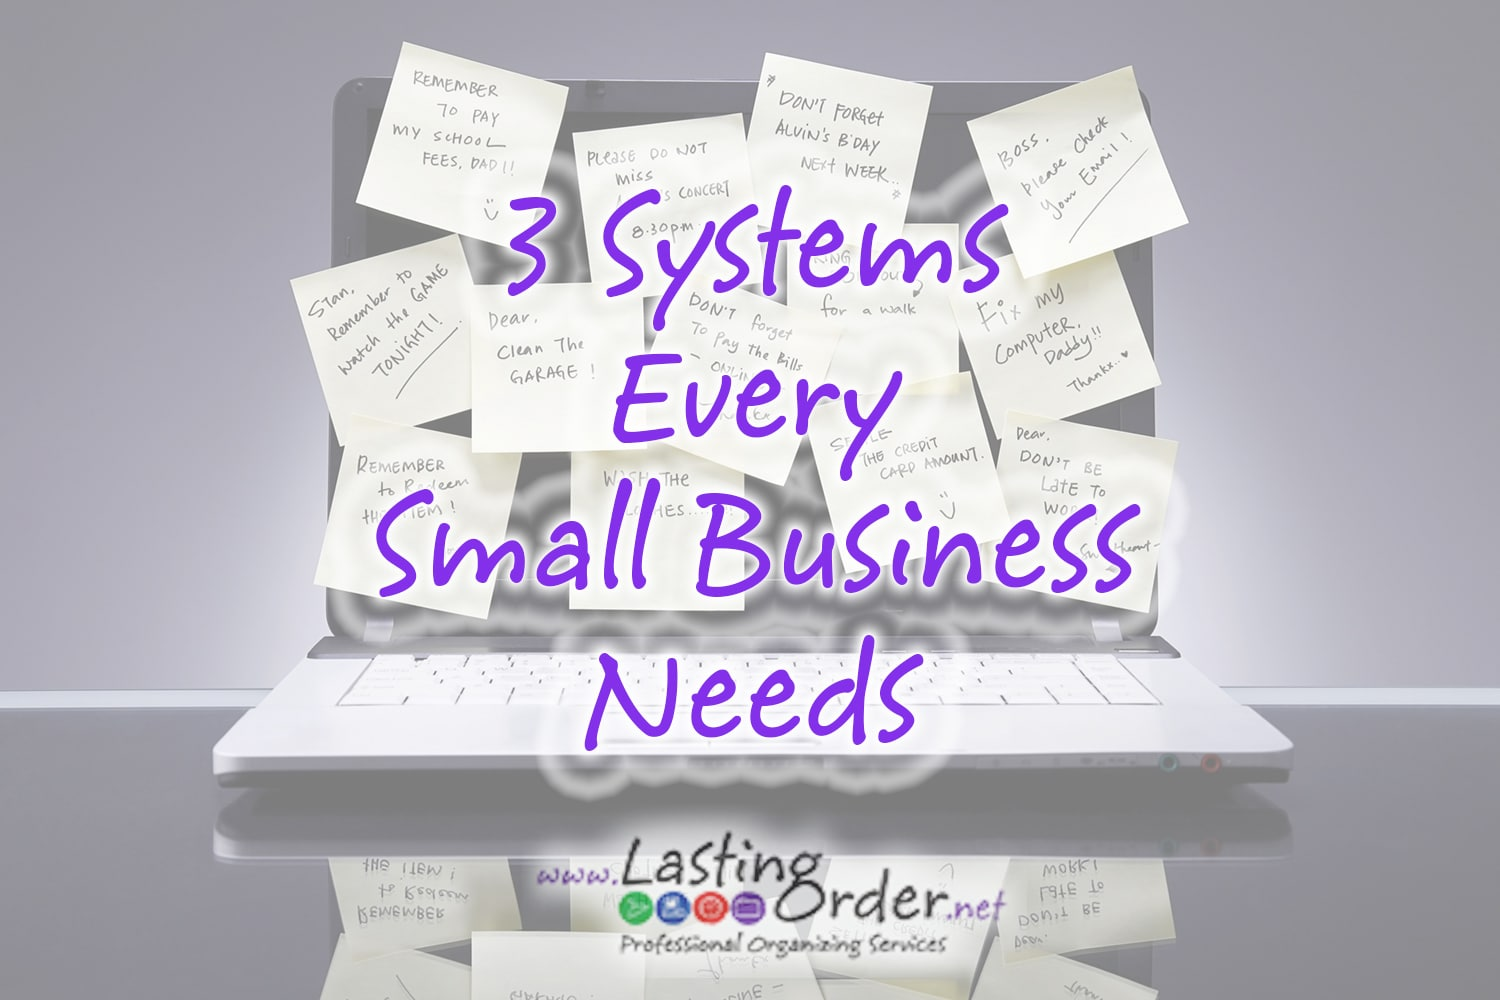 3 Systems Every Small Business Needs